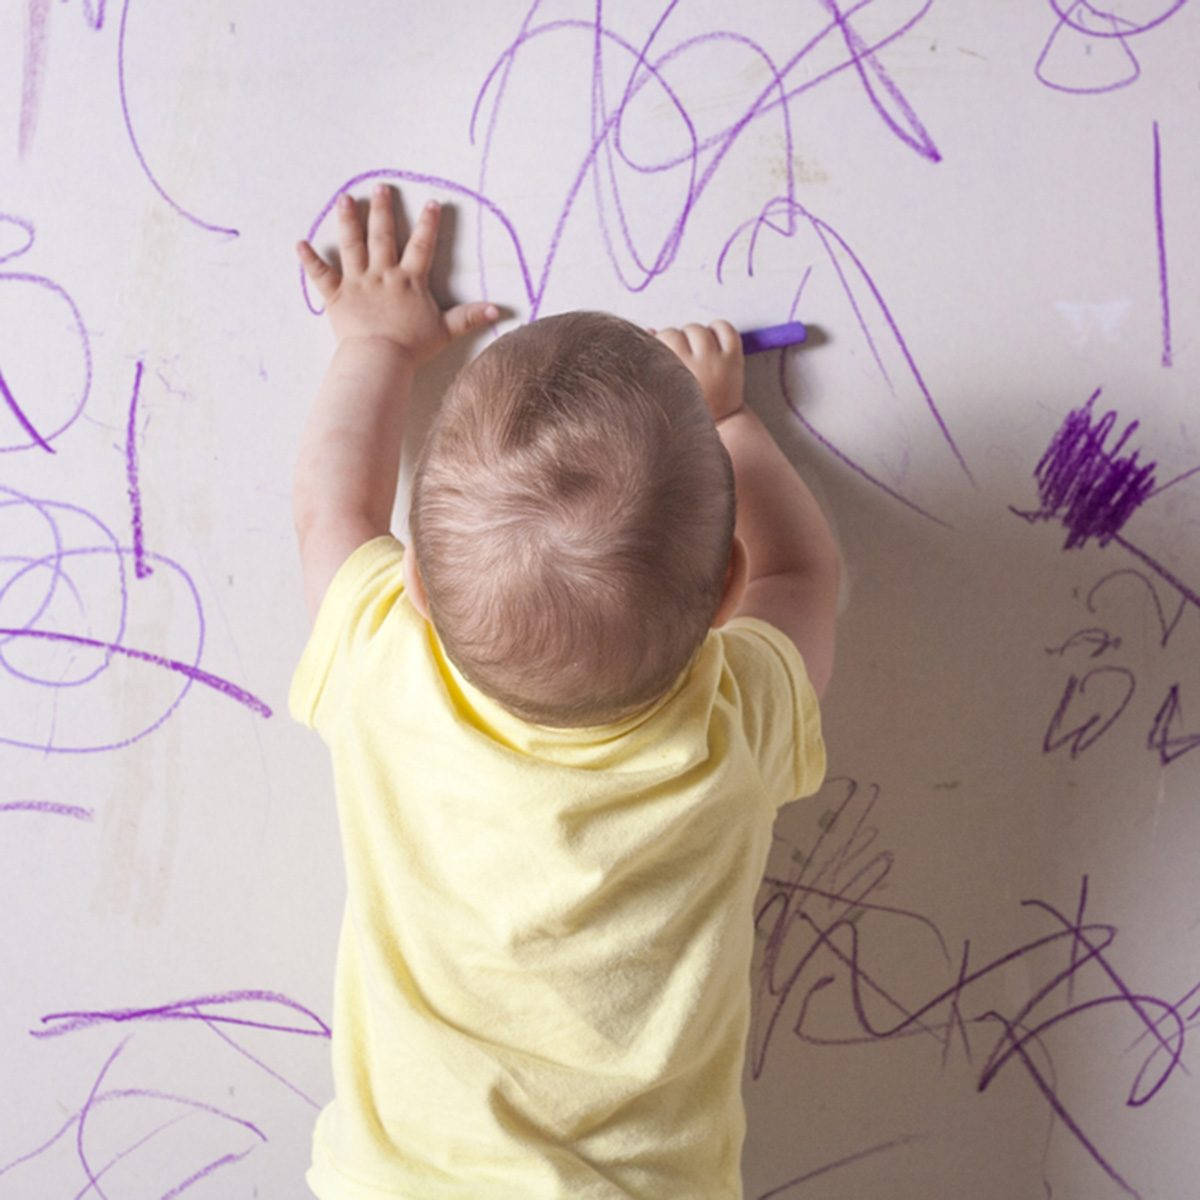 Baby boy drawing with wax crayon on plasterboard wall. He is with his back towards; Shutterstock ID 441125365